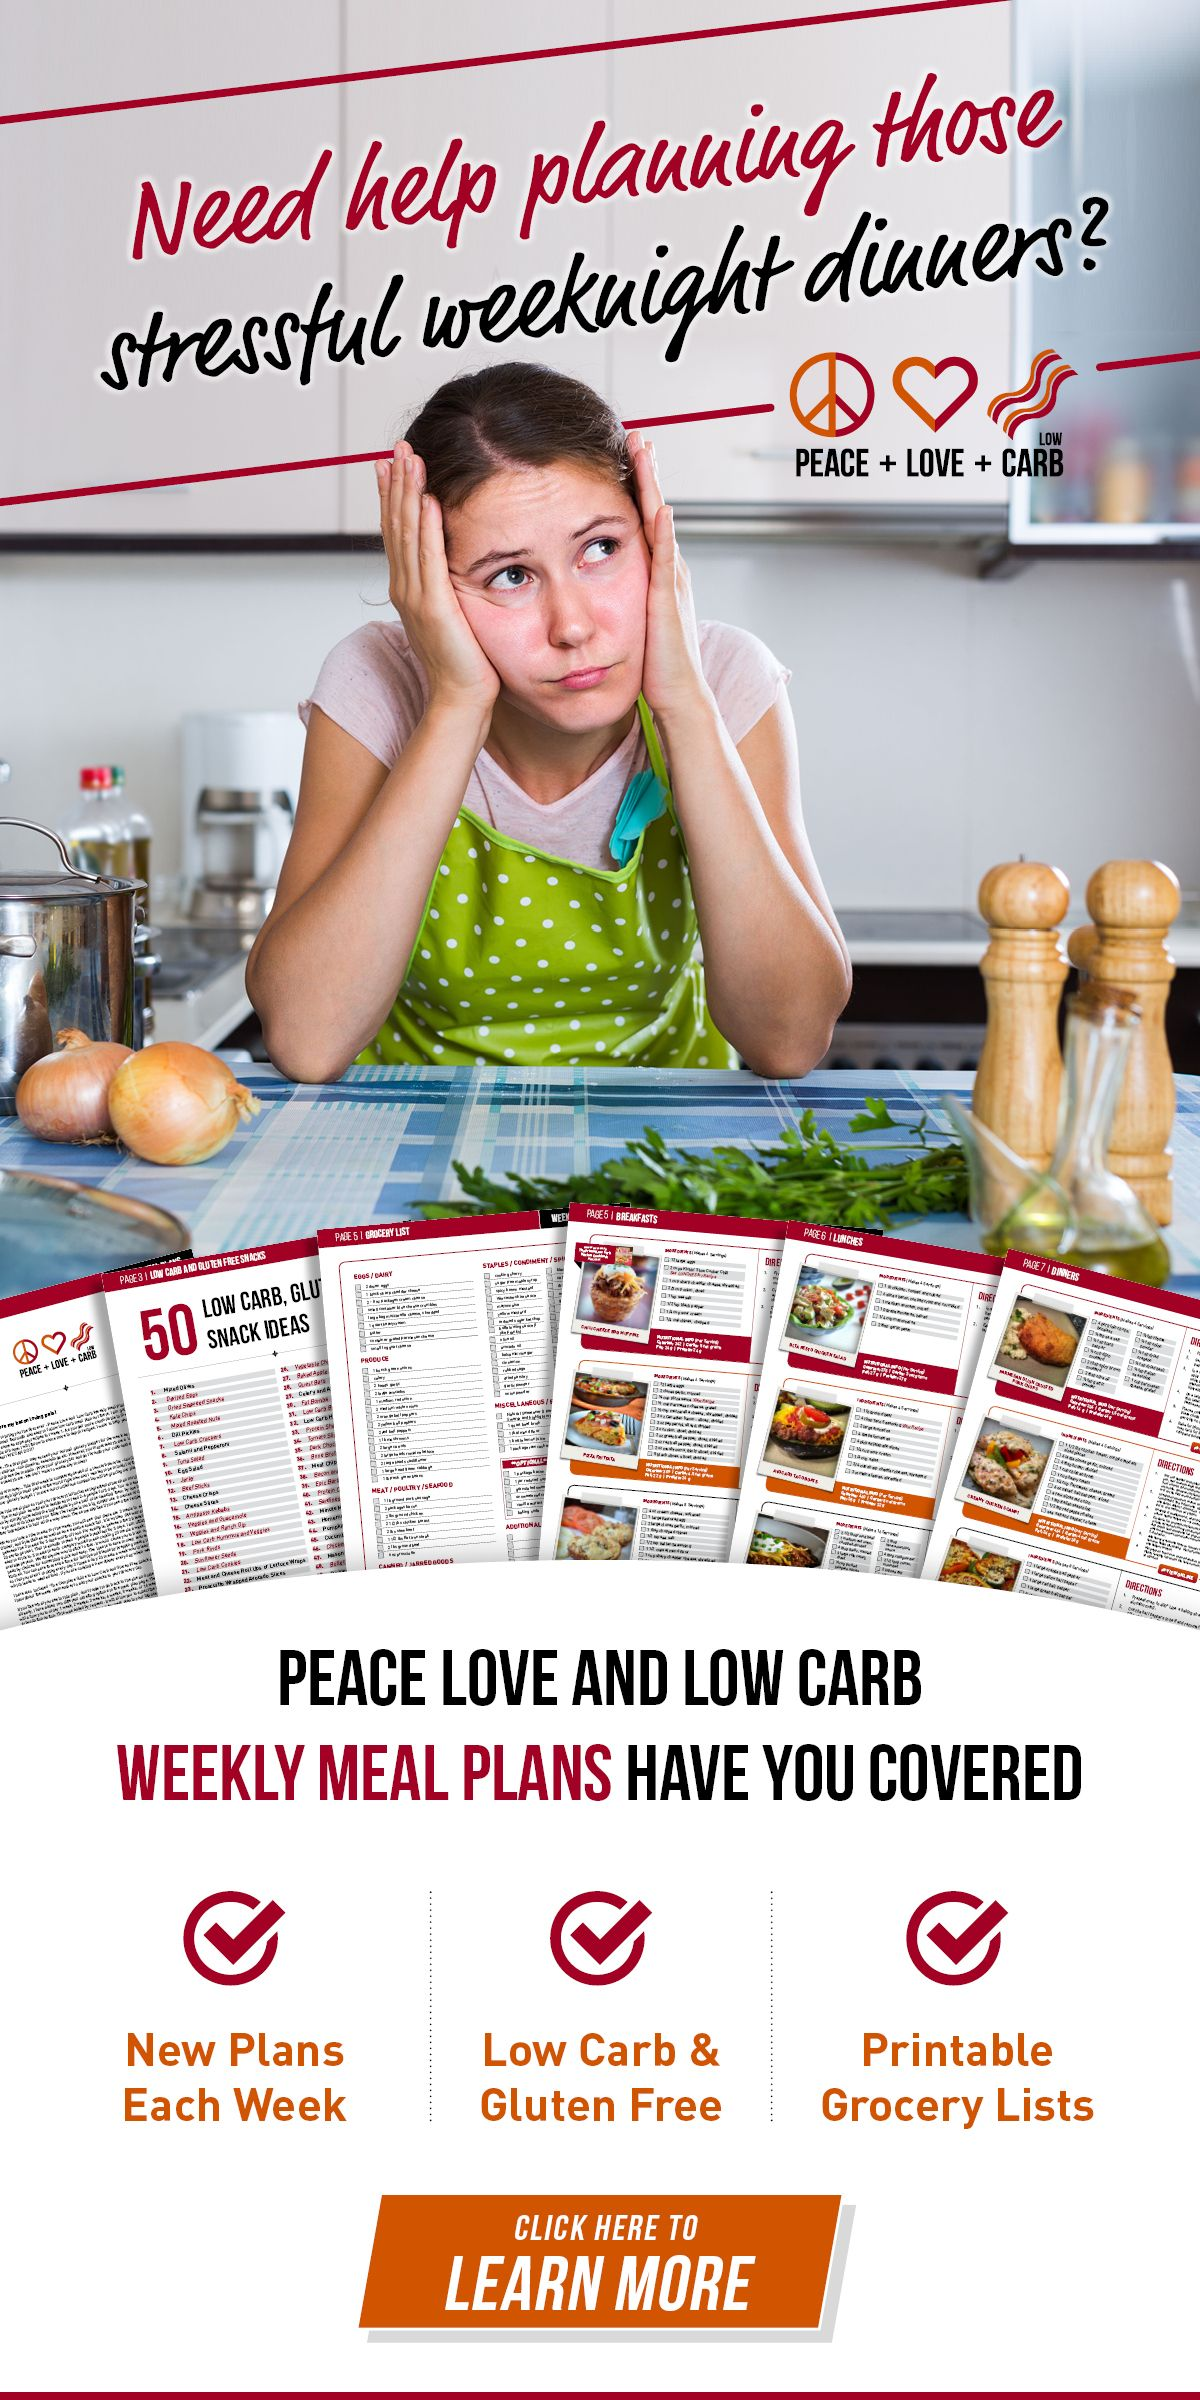 Peace, Love and Low Carb - Low Carb and Gluten Free Weekly Meal Plans